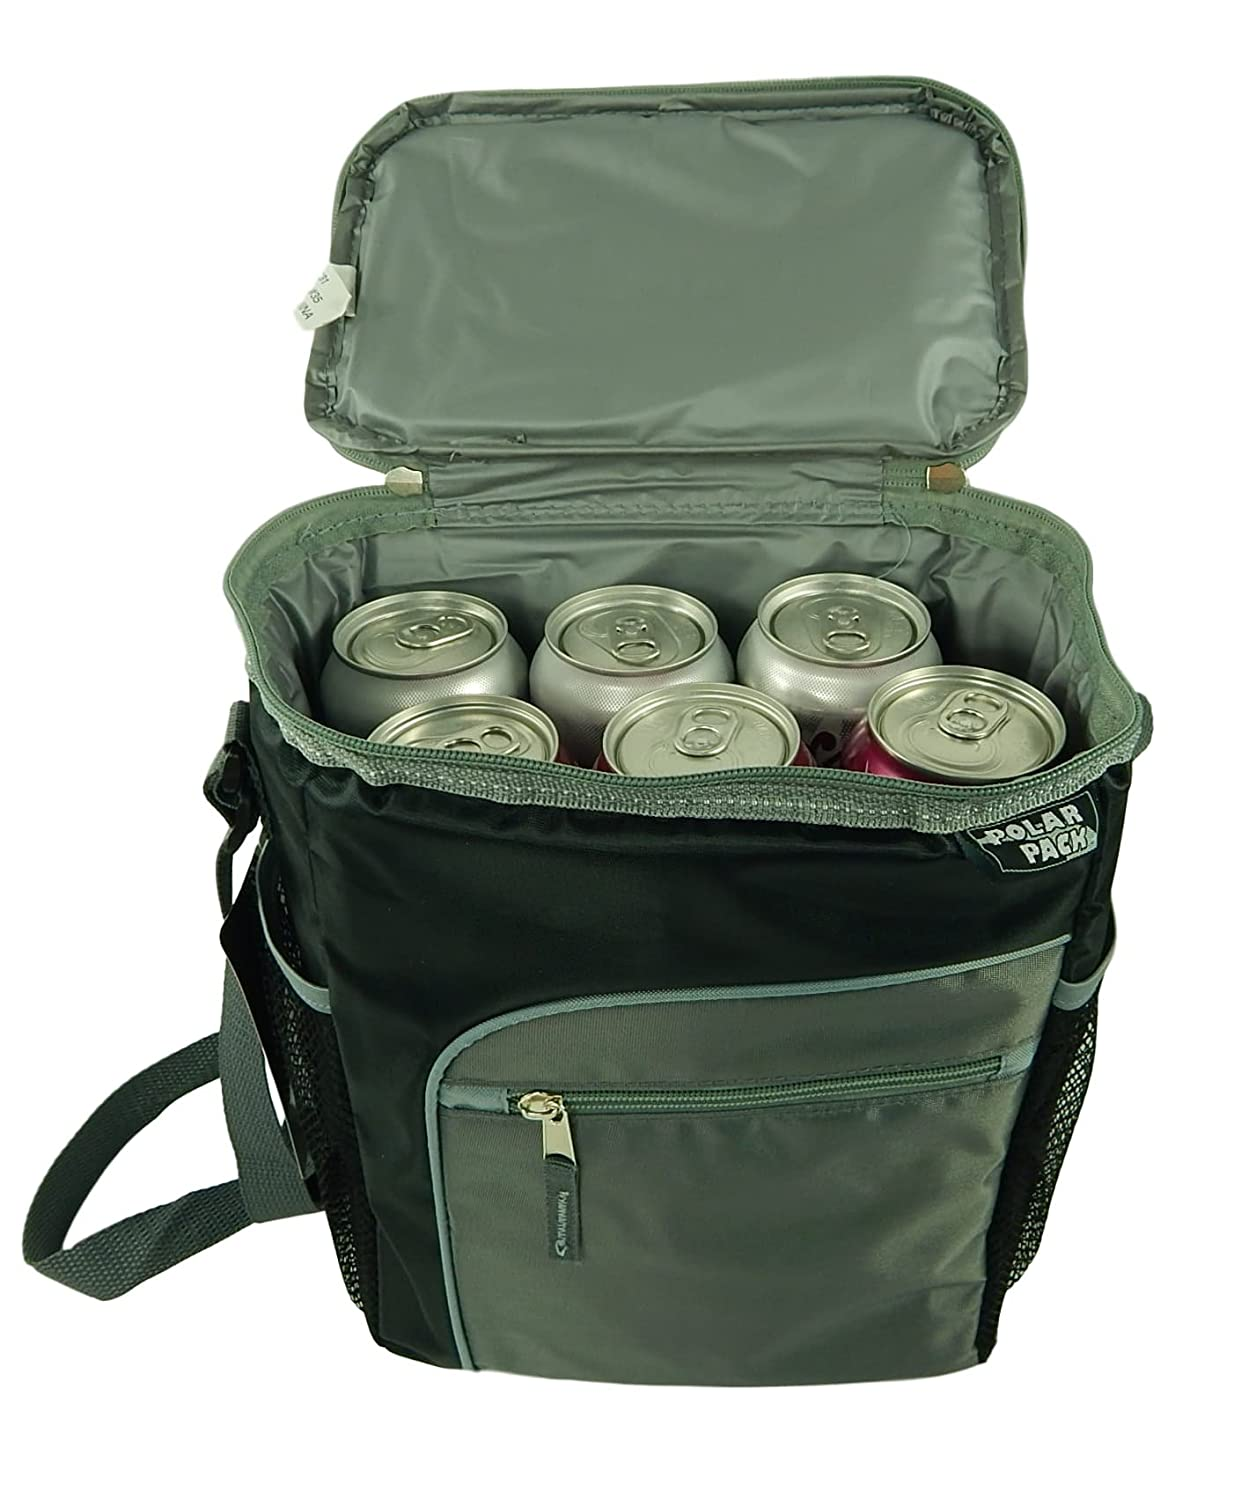 0e5796ebe453 4SGM Polar Pack 12 Can Cooler Insulated Collapsible with Pockets and  Shoulder Strap 1 Gallon (Black)